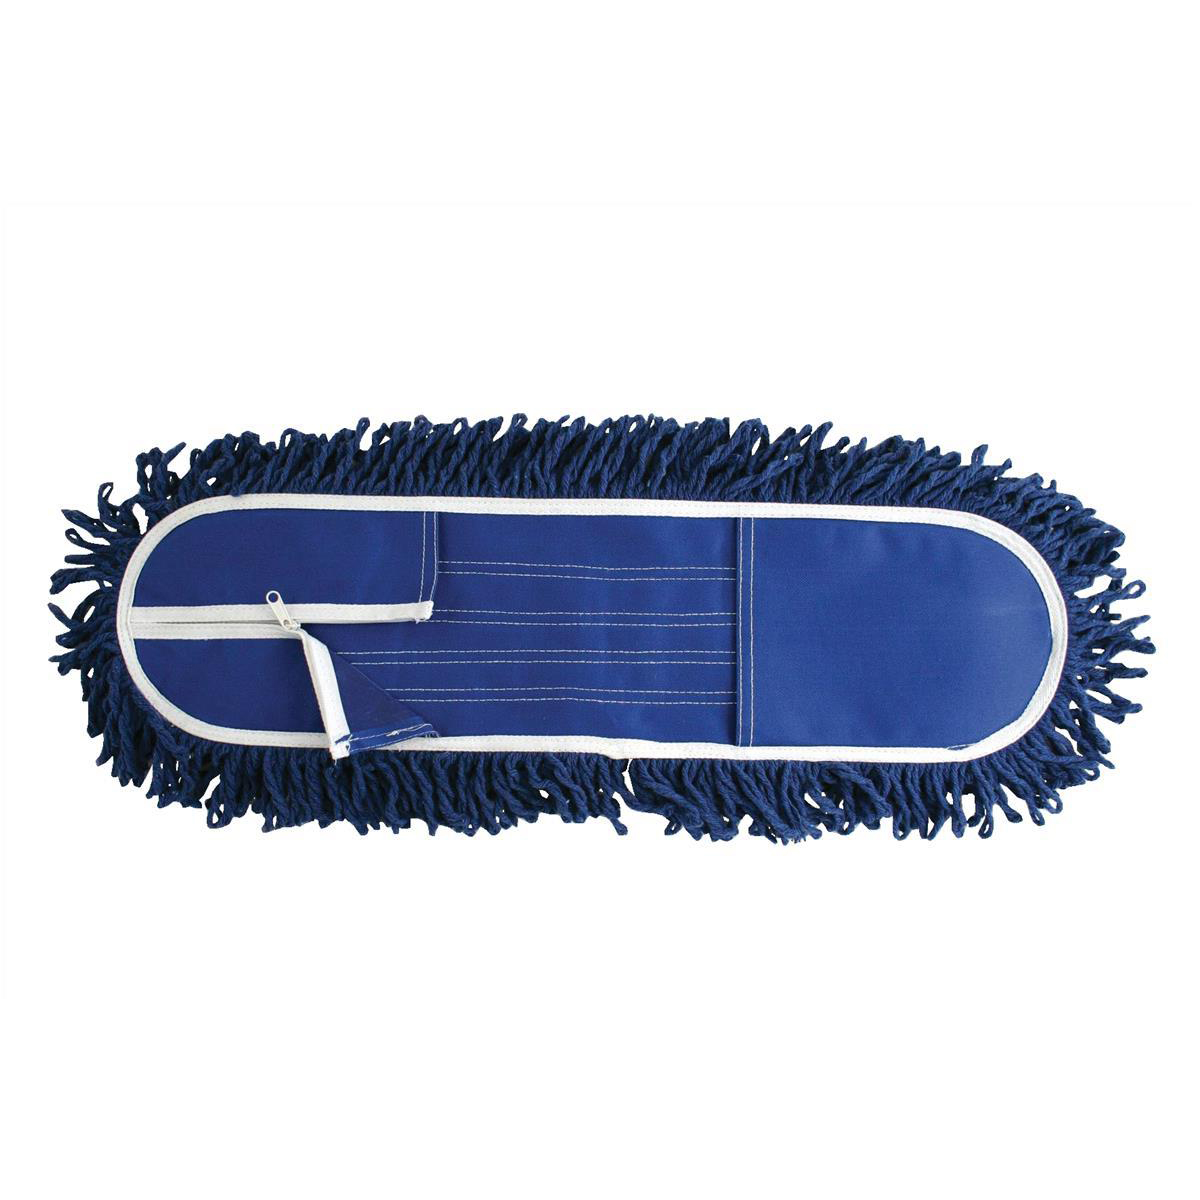 Brushes & Brooms Bentley Dustbeater Replacement Head 60cm Blue Ref SPC/DBC60